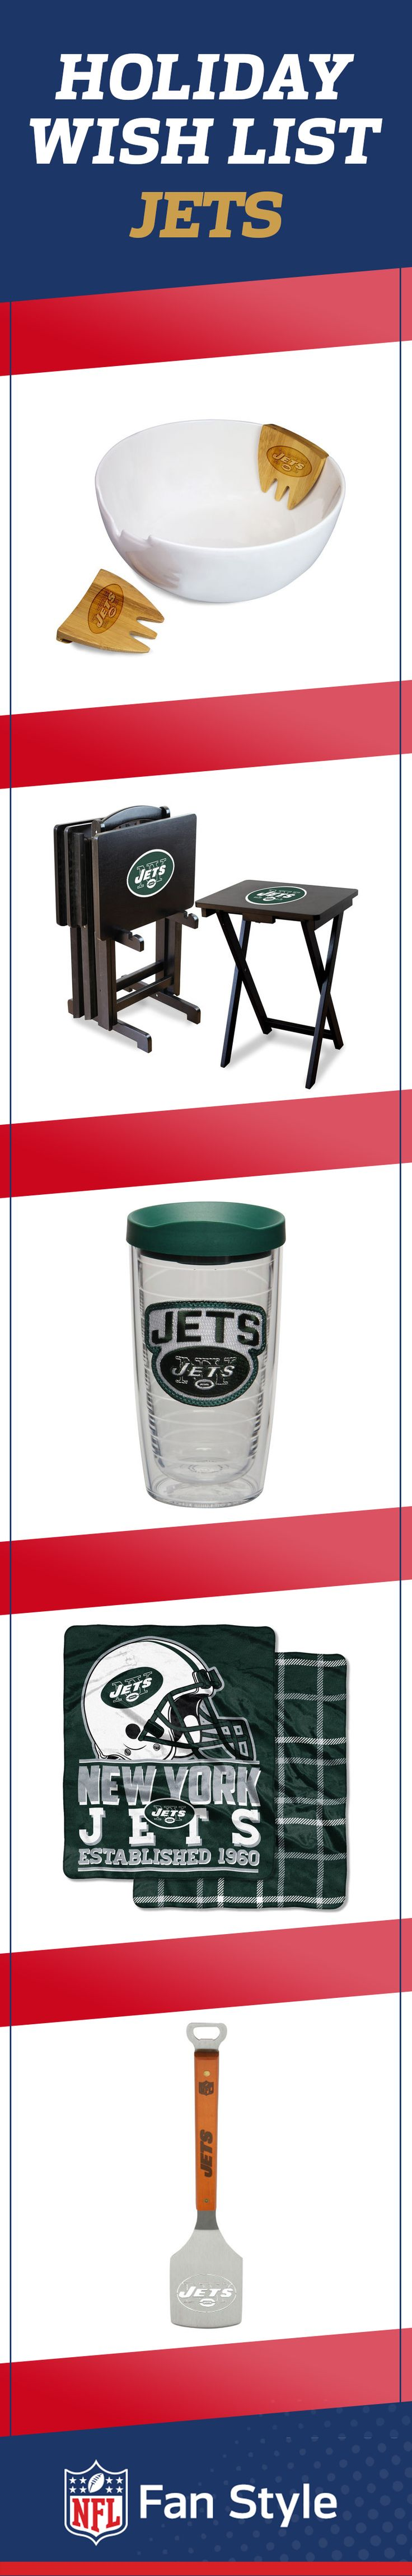 61 best New York Jets Style images on Pinterest   New york jets ...